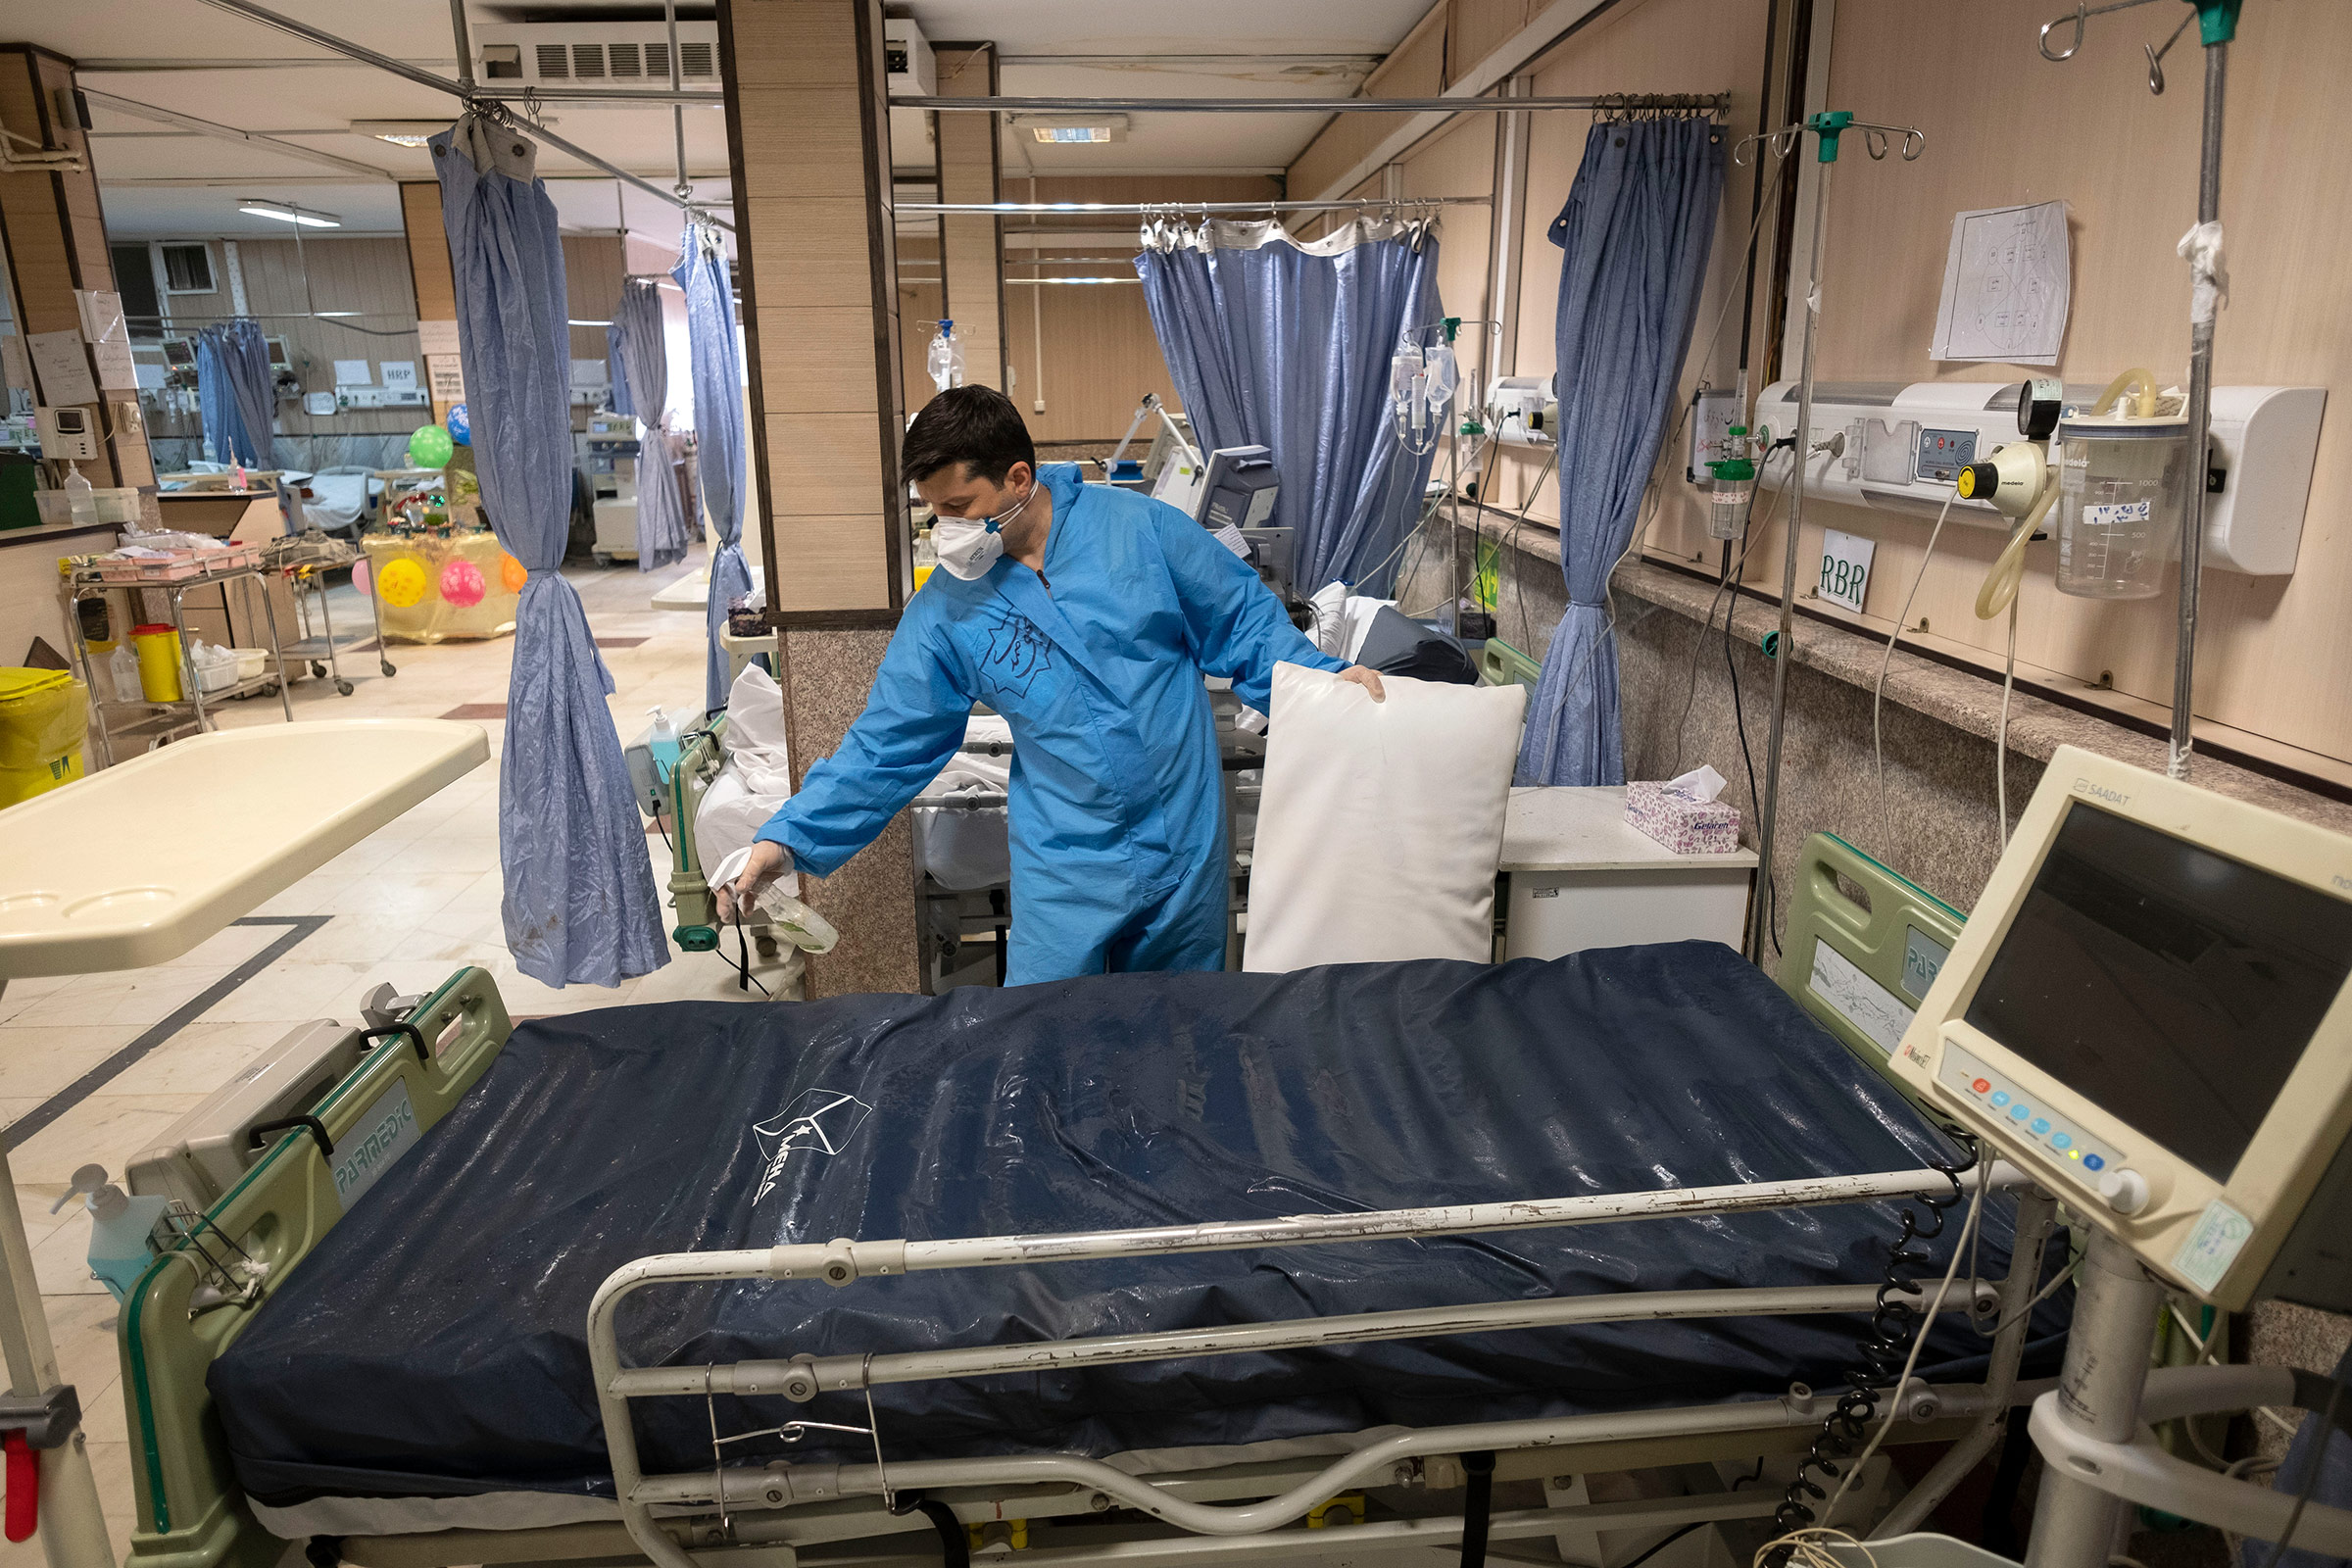 A health assistant disinfects a bed in Firoozabadi hospital's Covid-19 ward in Tehran, Iran, on March 20.